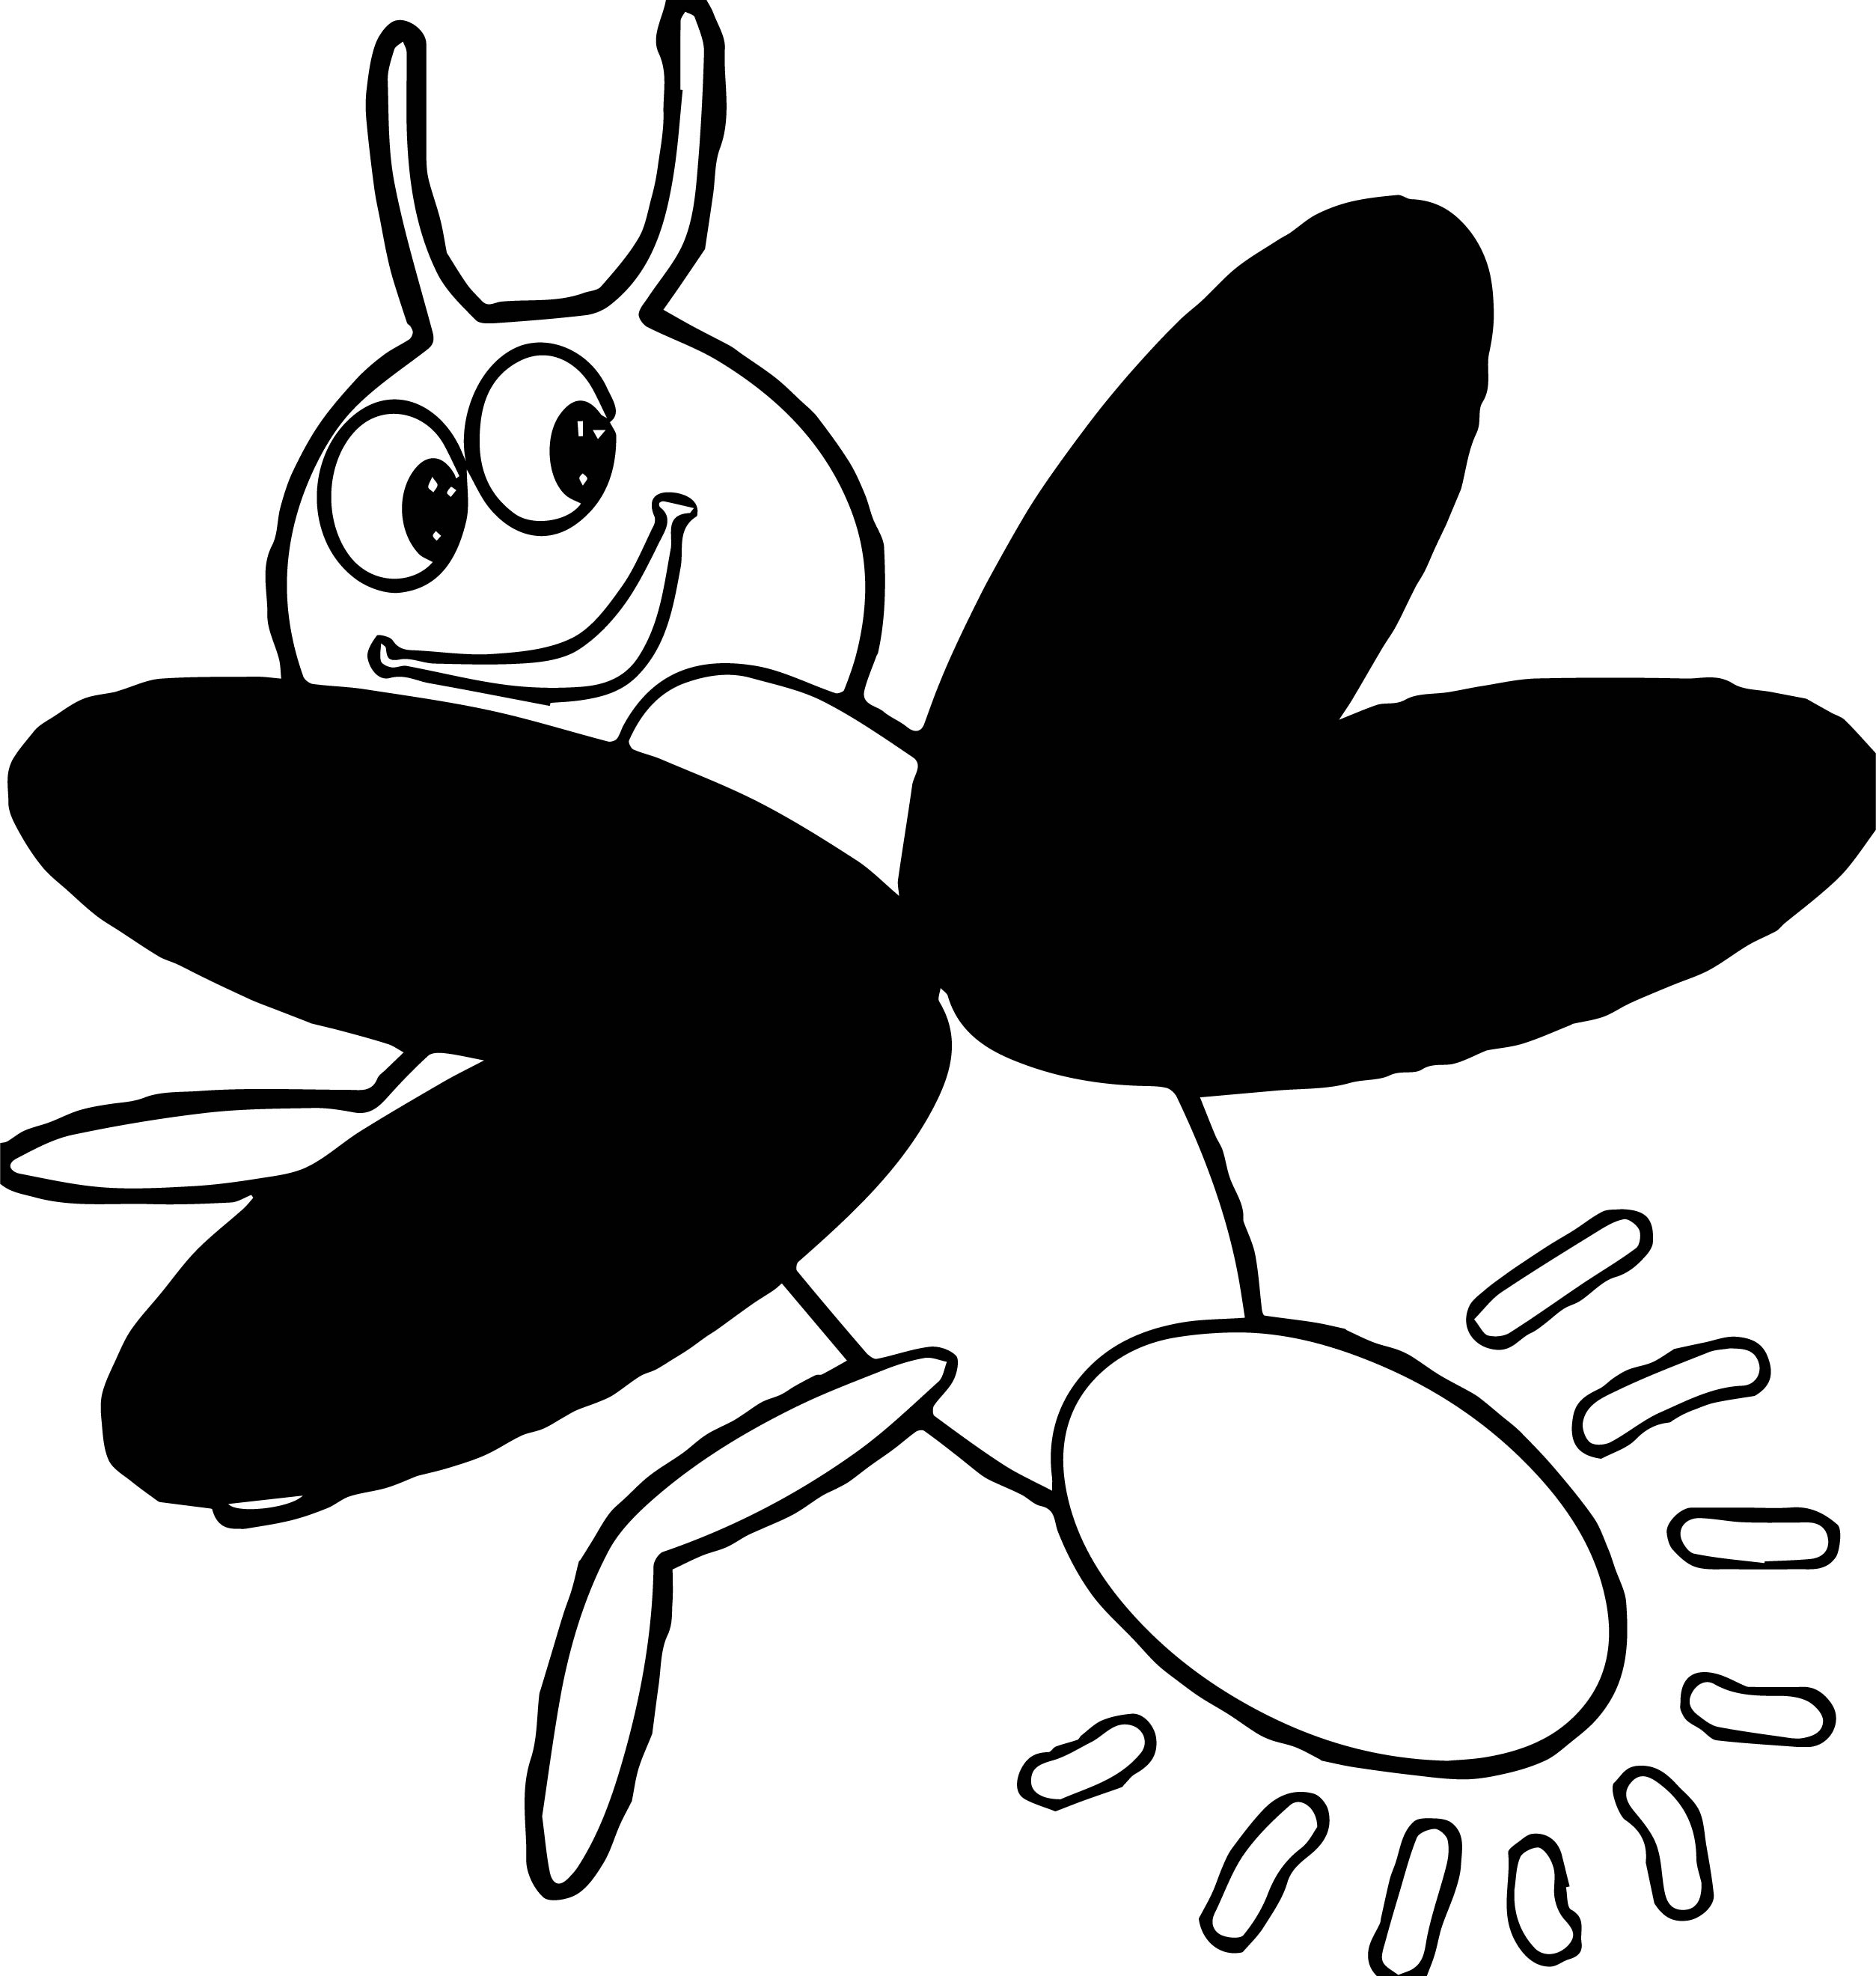 firefly insect coloring page